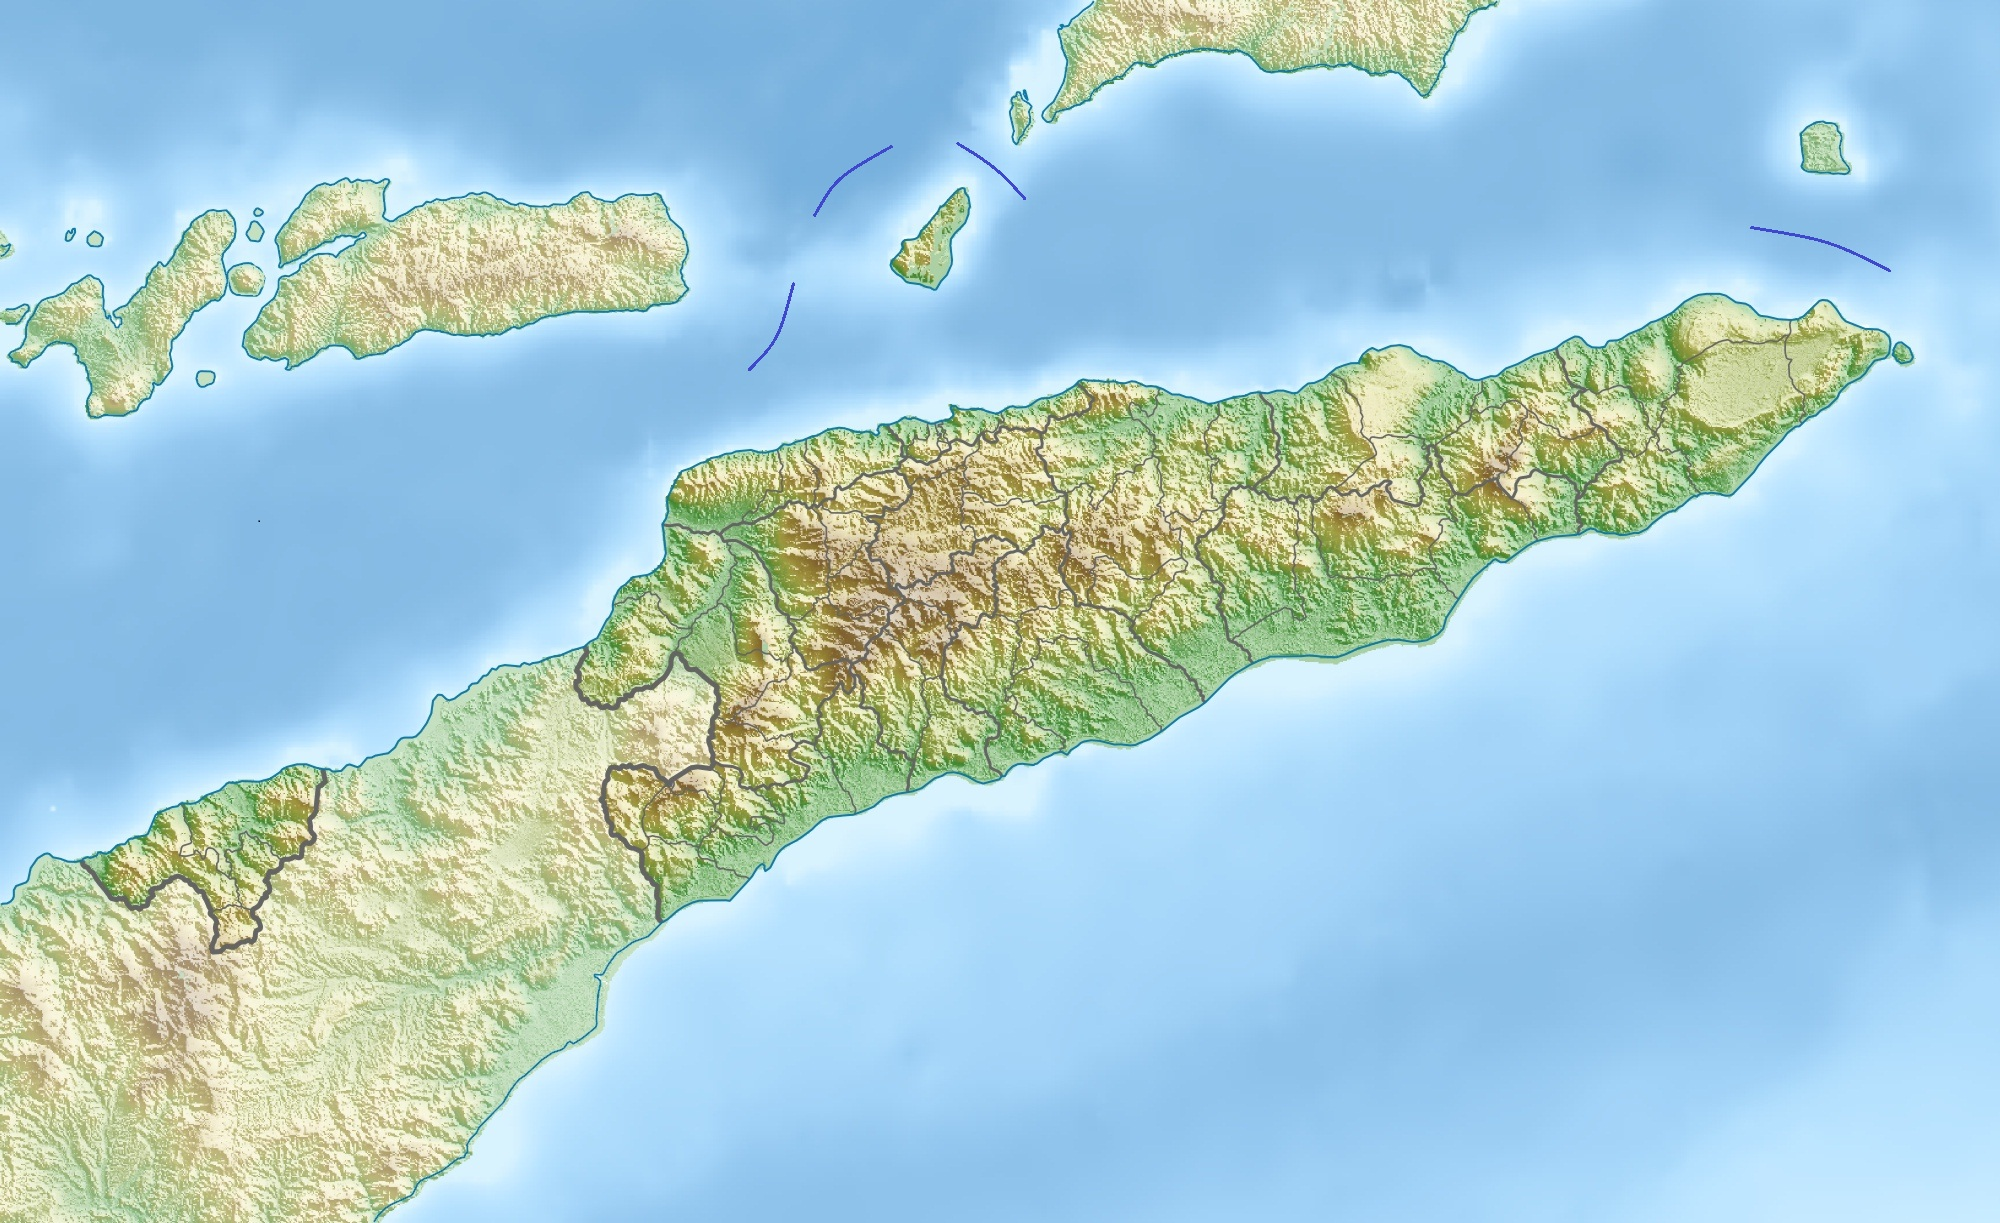 Datei:East Timor Relief Location Map.jpg